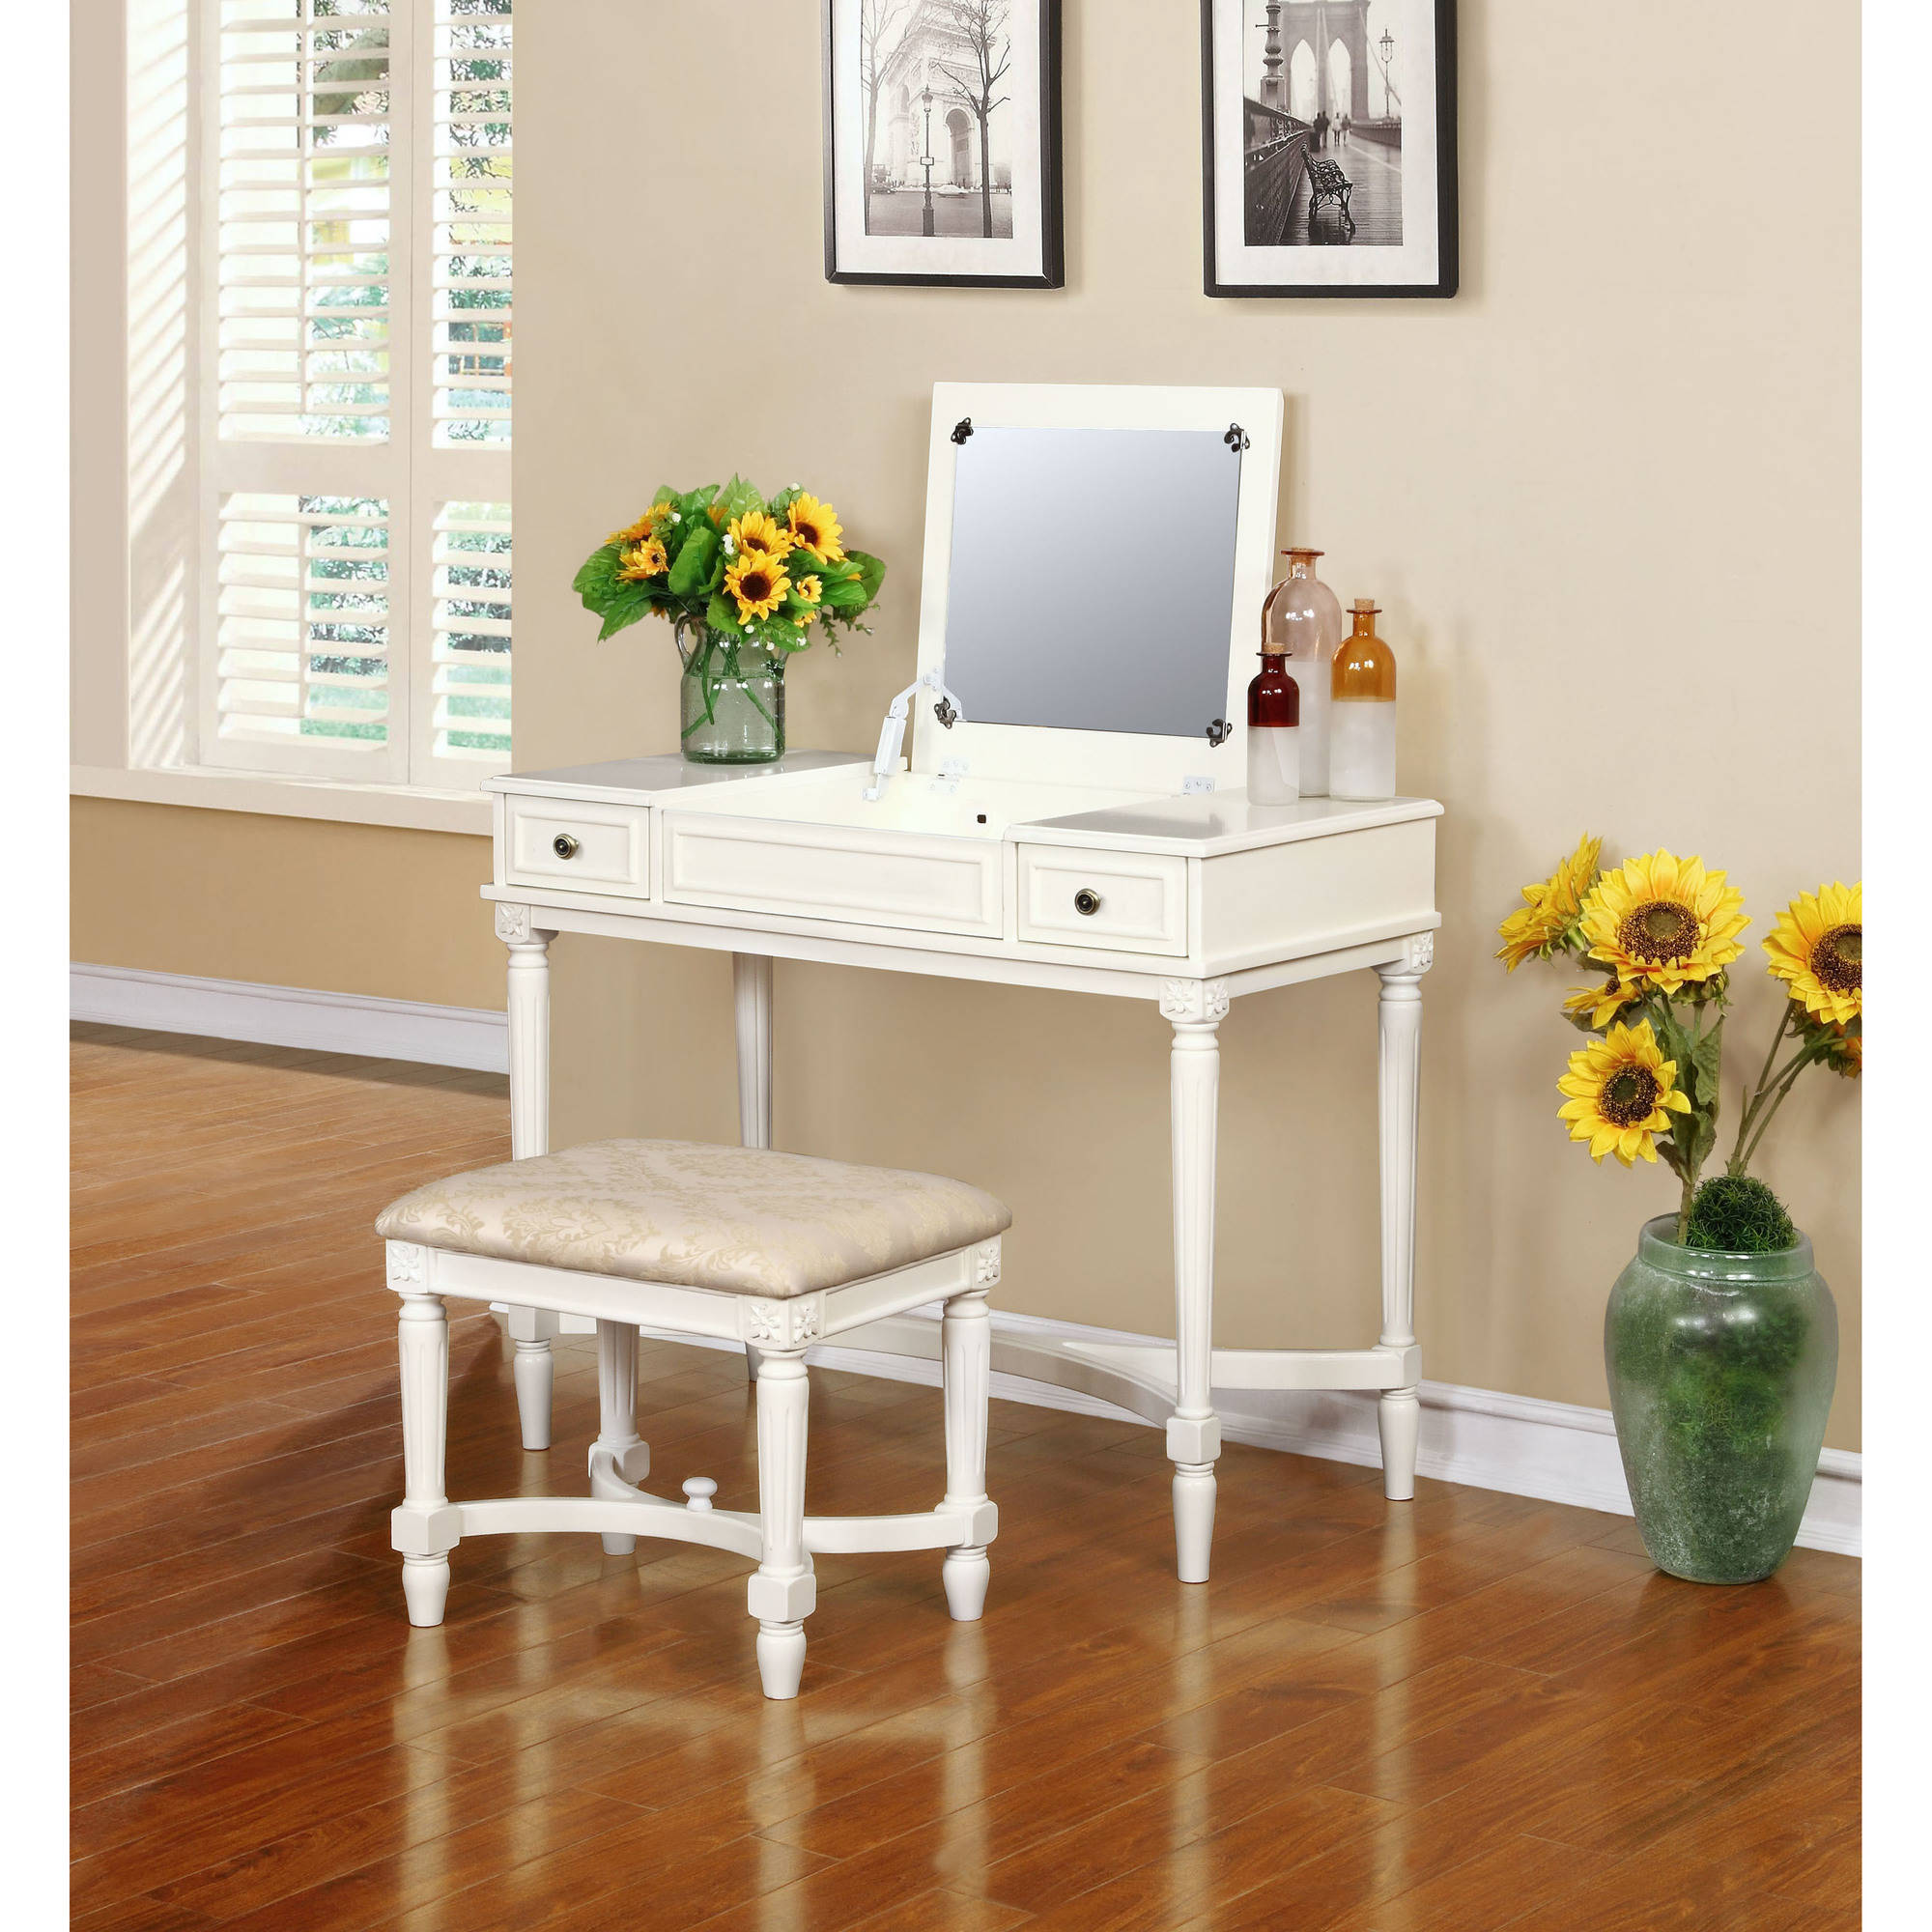 Linon Cyndi Vanity Set With Mirror And Bench, White, 17.5 Inch Seat Height